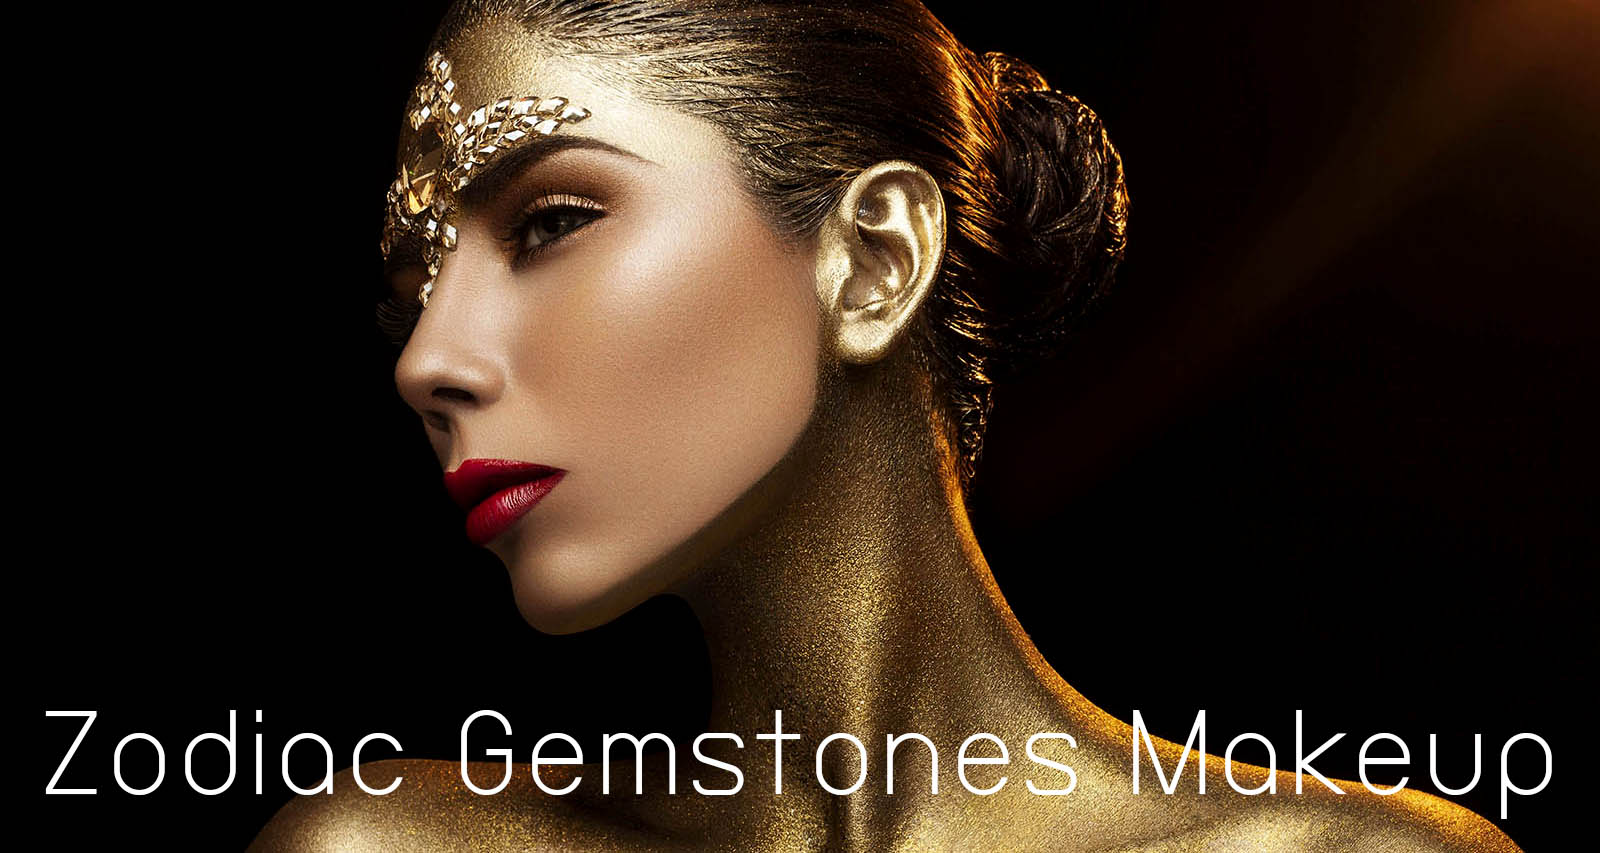 Zodiac Gemstones Makeup HEAD